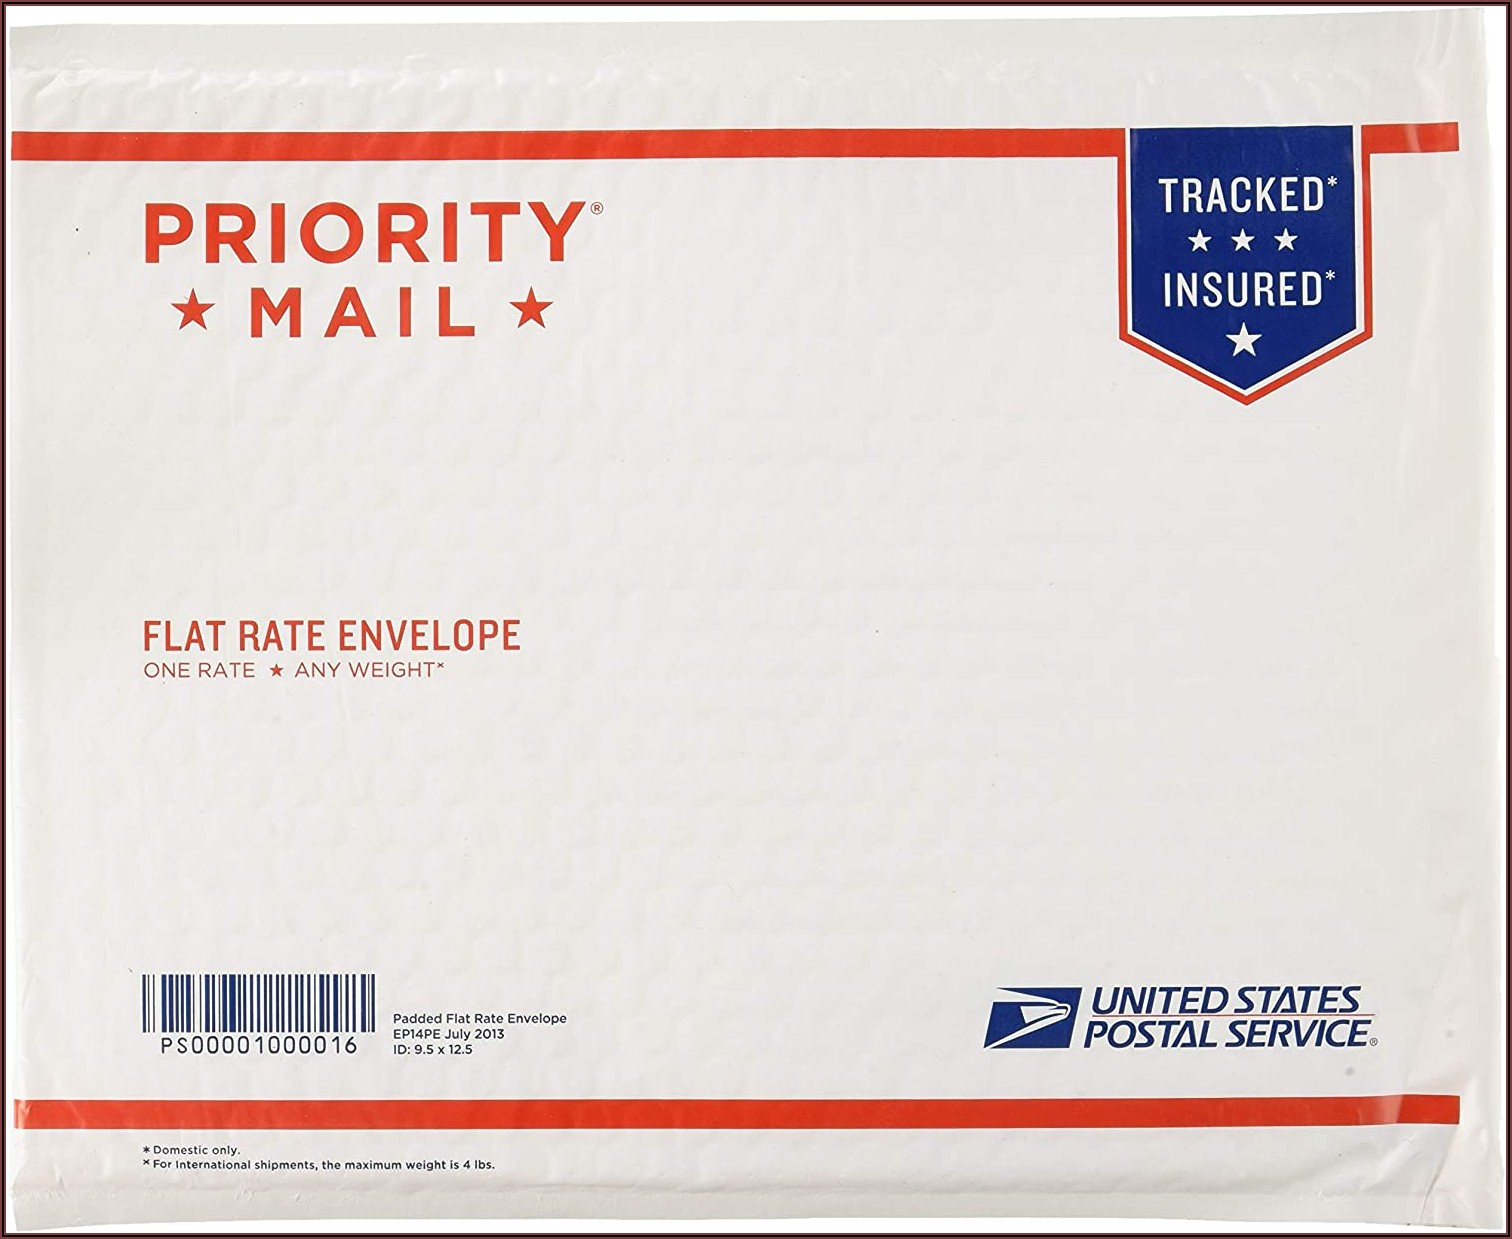 Usps Padded Flat Rate Envelope Cost 2020